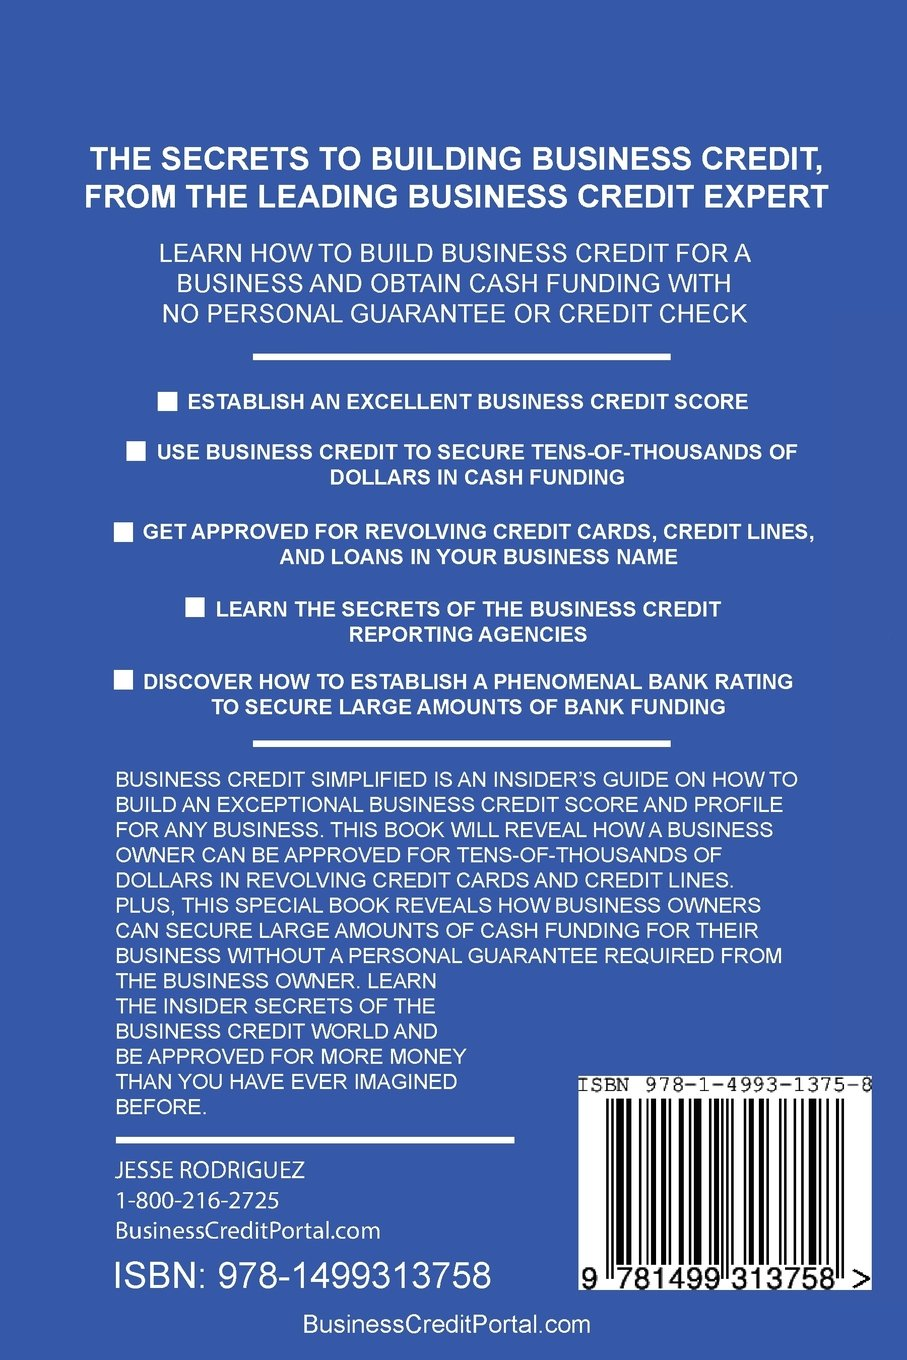 Business credit simplified how to build credit and get funding with business credit simplified how to build credit and get funding with no personal guarantee jesse g rodriguez 9781499313758 amazon books reheart